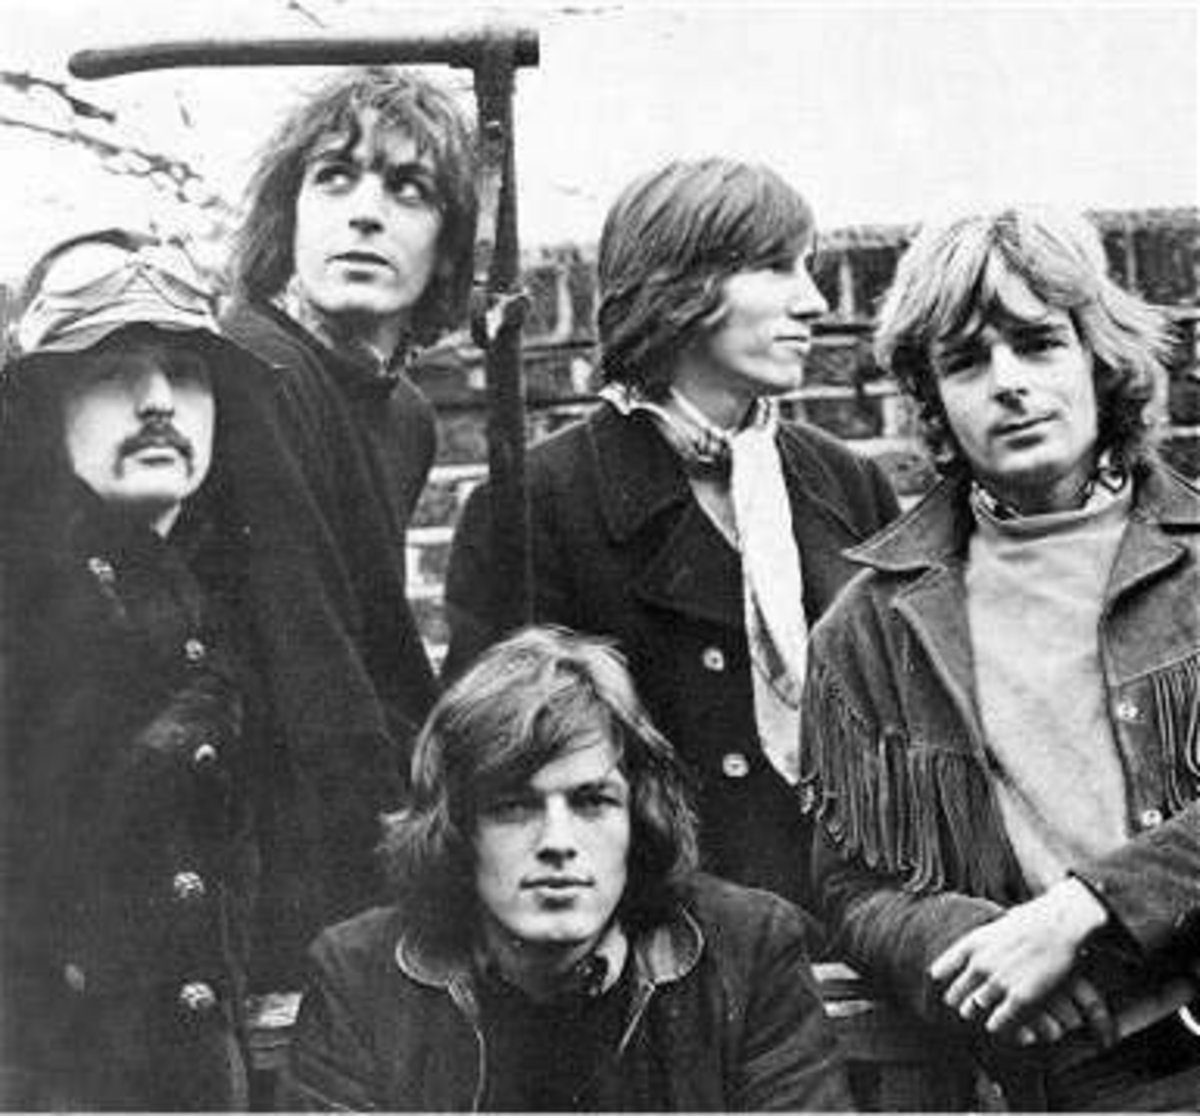 Short-lived (only a few weeks) line-up of all five members of Pink Floyd. Nick Mason, Syd Barrett, Roger Waters, Richard Wright, and David Gilmour (seated)